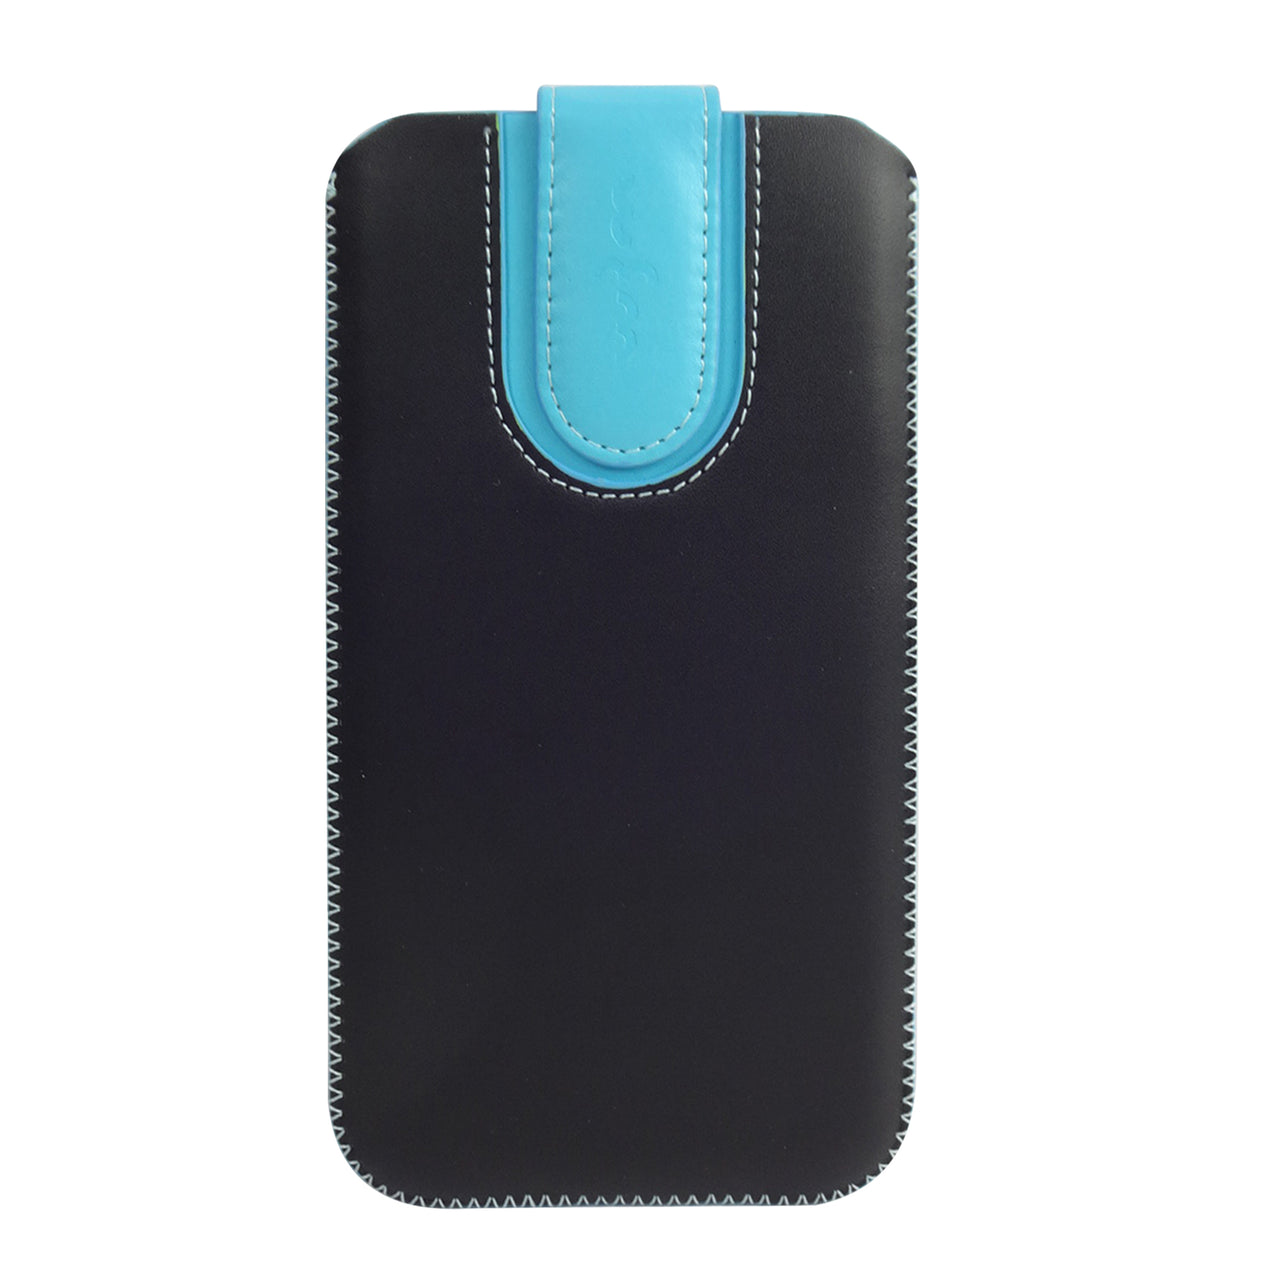 Universal Phone Pouch - Two Tone Black Blue